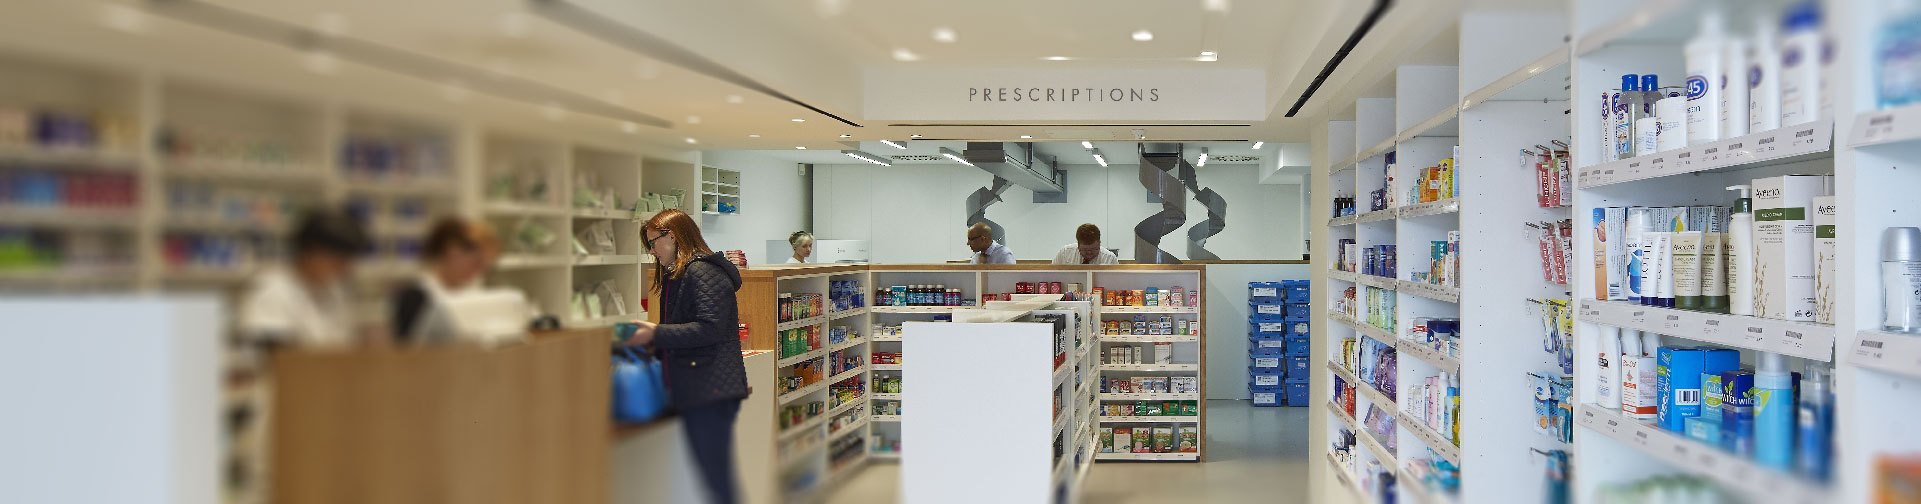 interior-pharmacy